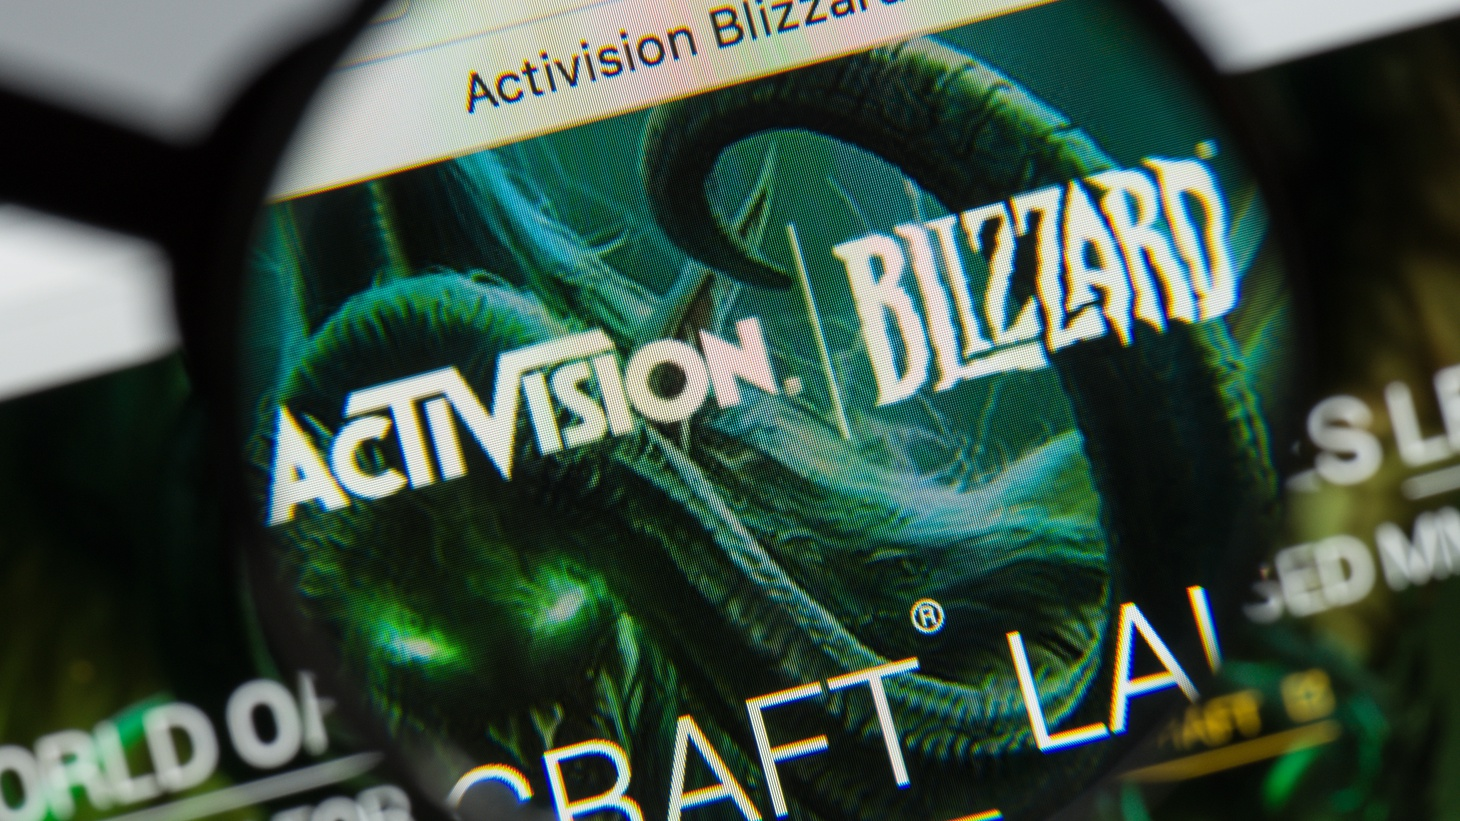 """Activision Blizzard is the production company behind """"World of Warcraft"""" and """"Call of Duty."""" Now labor regulators in California have filed a claim citing Activision Blizzard's failure to address a """"pervasive frat boy workplace culture."""""""